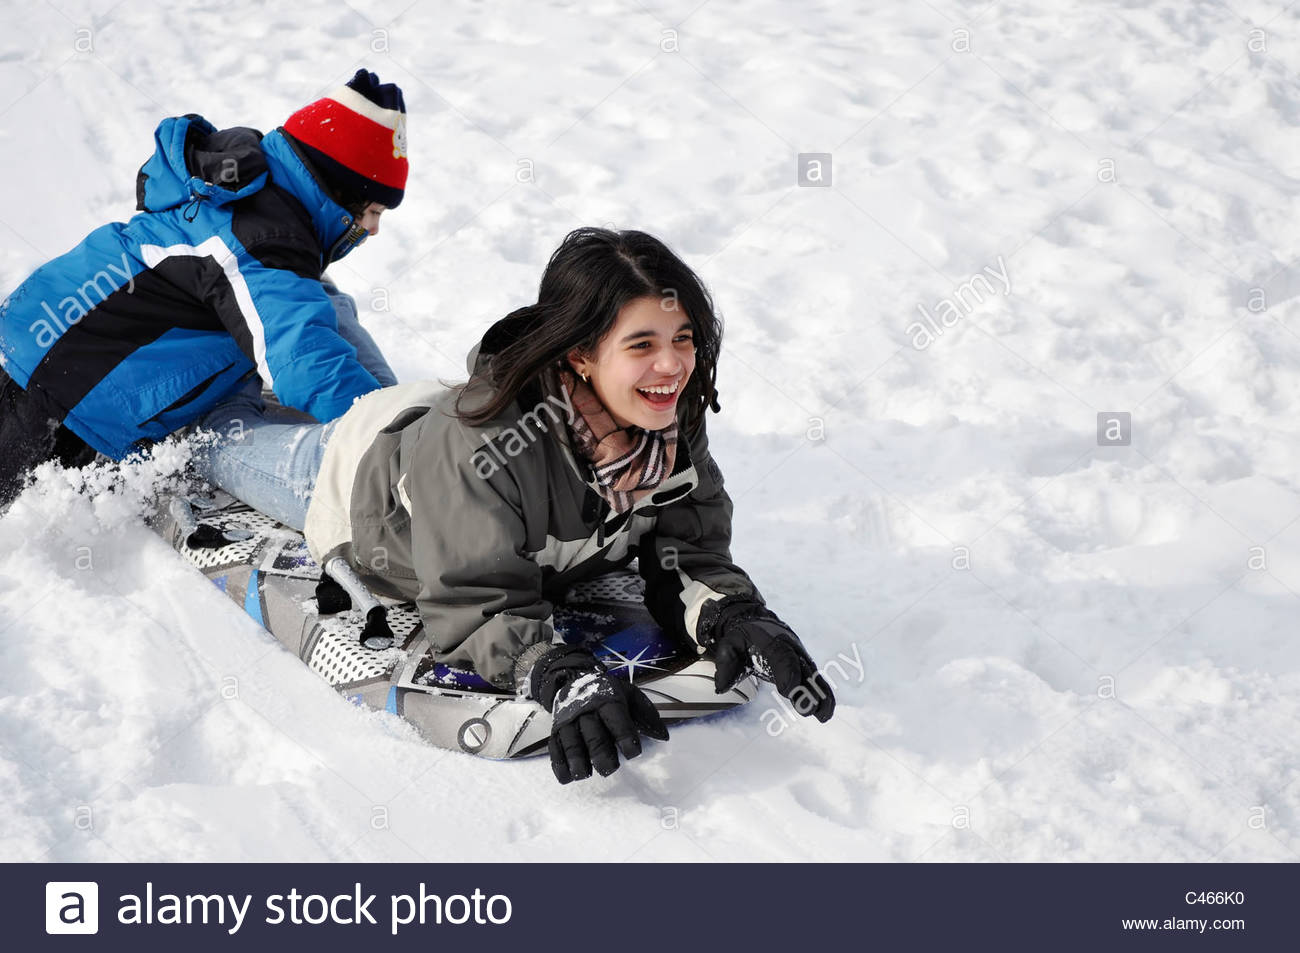 Hispanic children sliding in the snow during the Canadian winter. Playing and having fun outdoors. Stock Photo